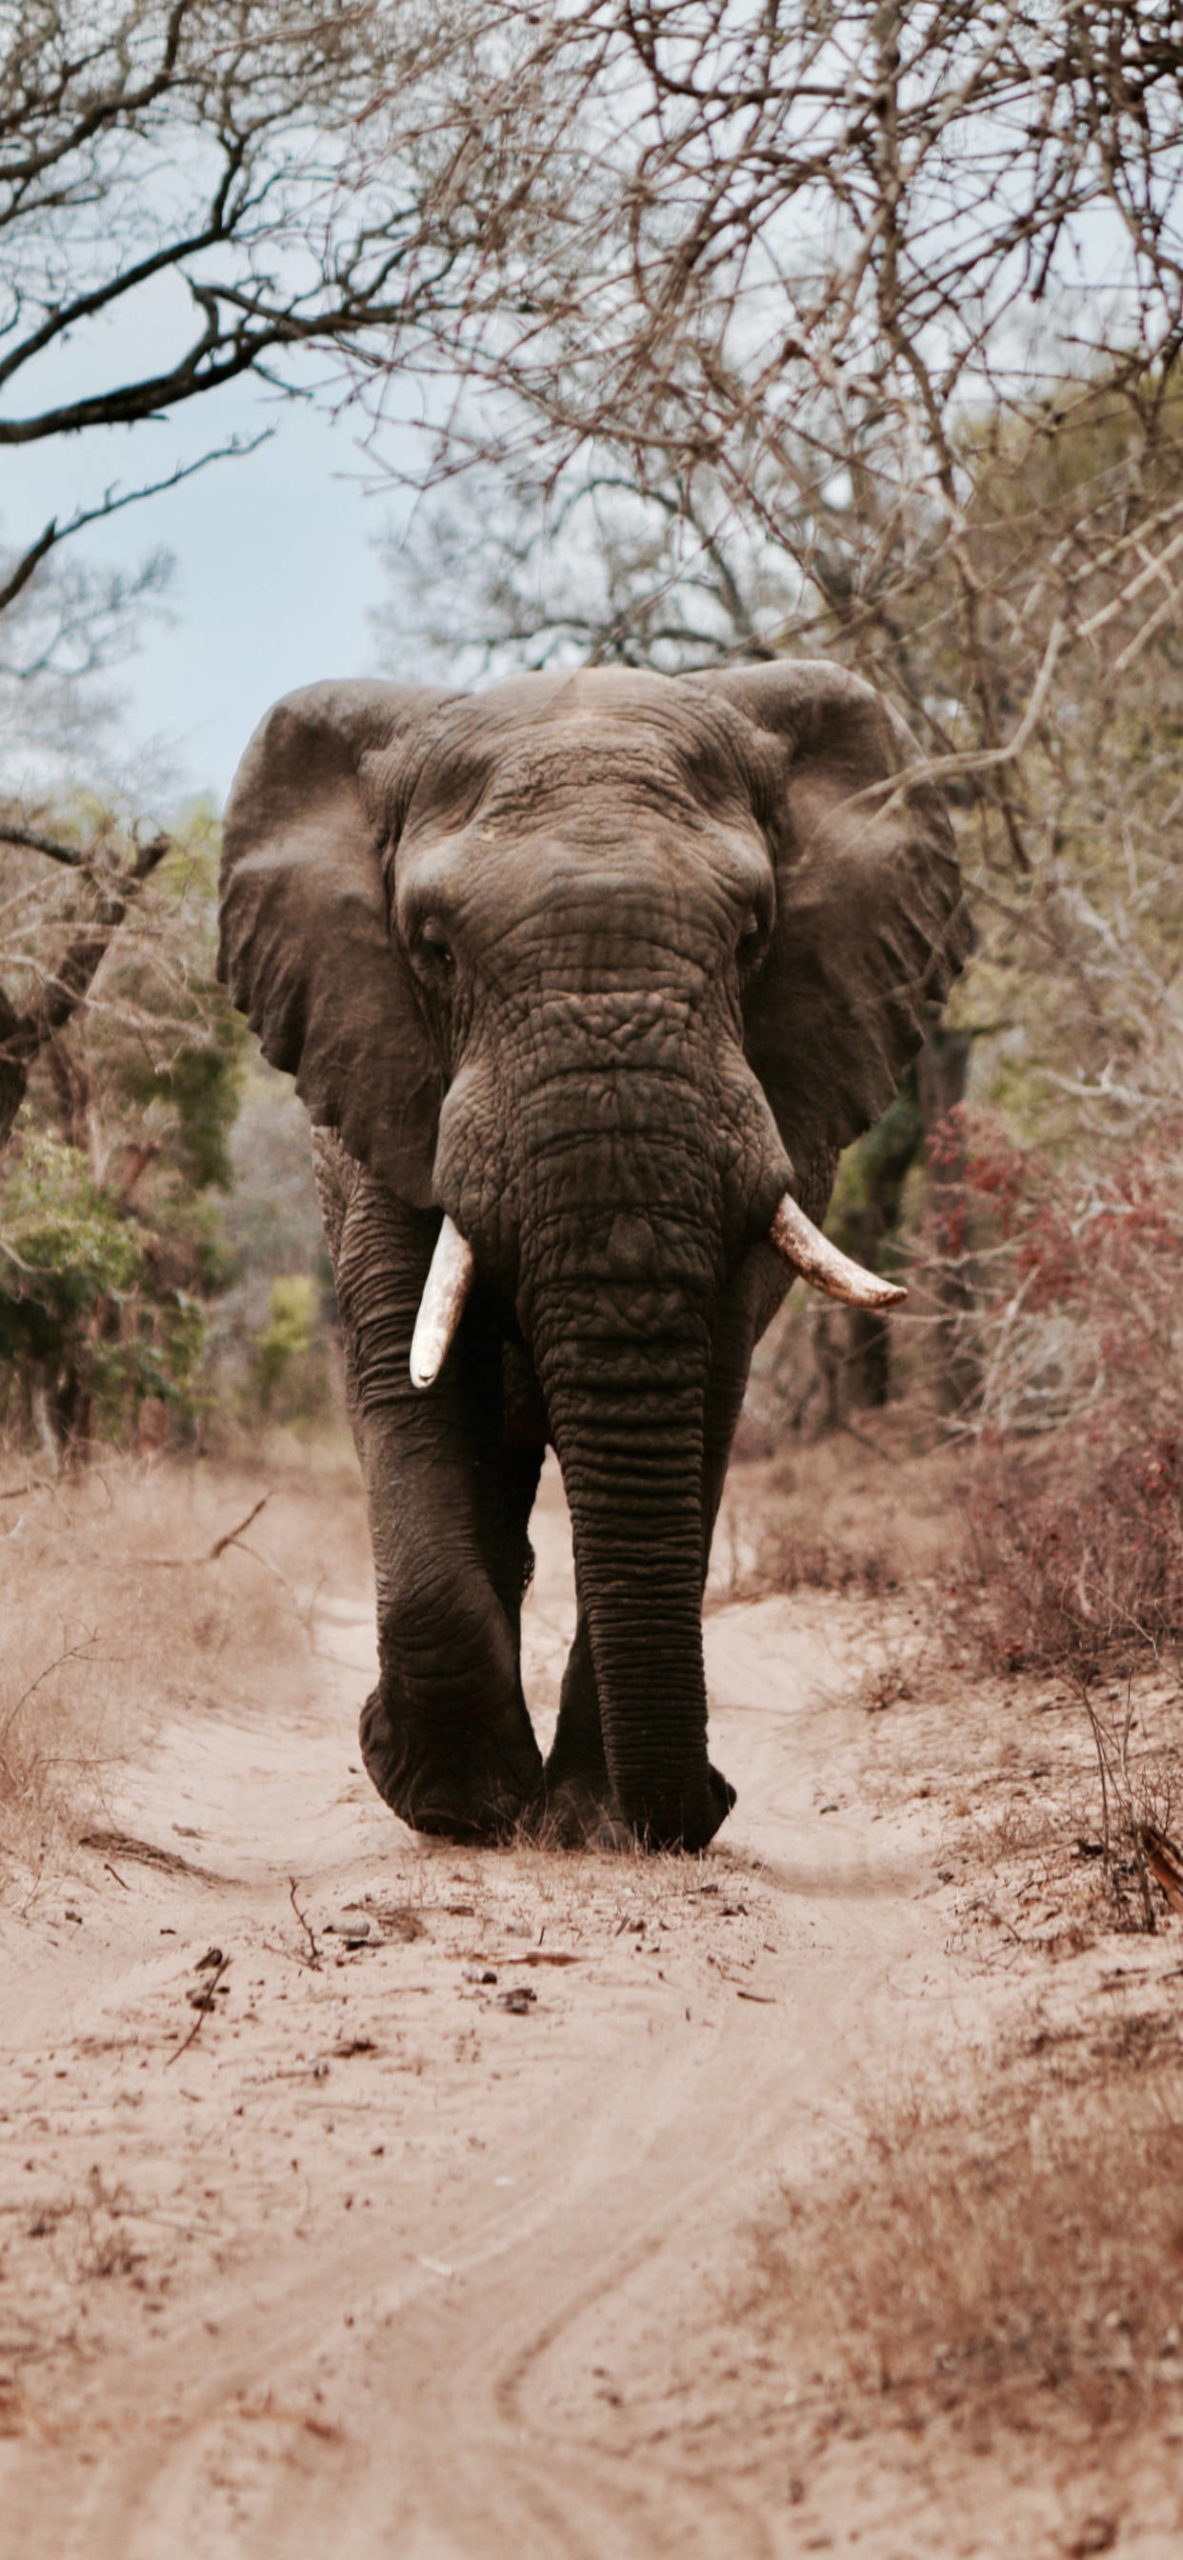 iPhone wallpapers animal elephant africa scaled Elephant